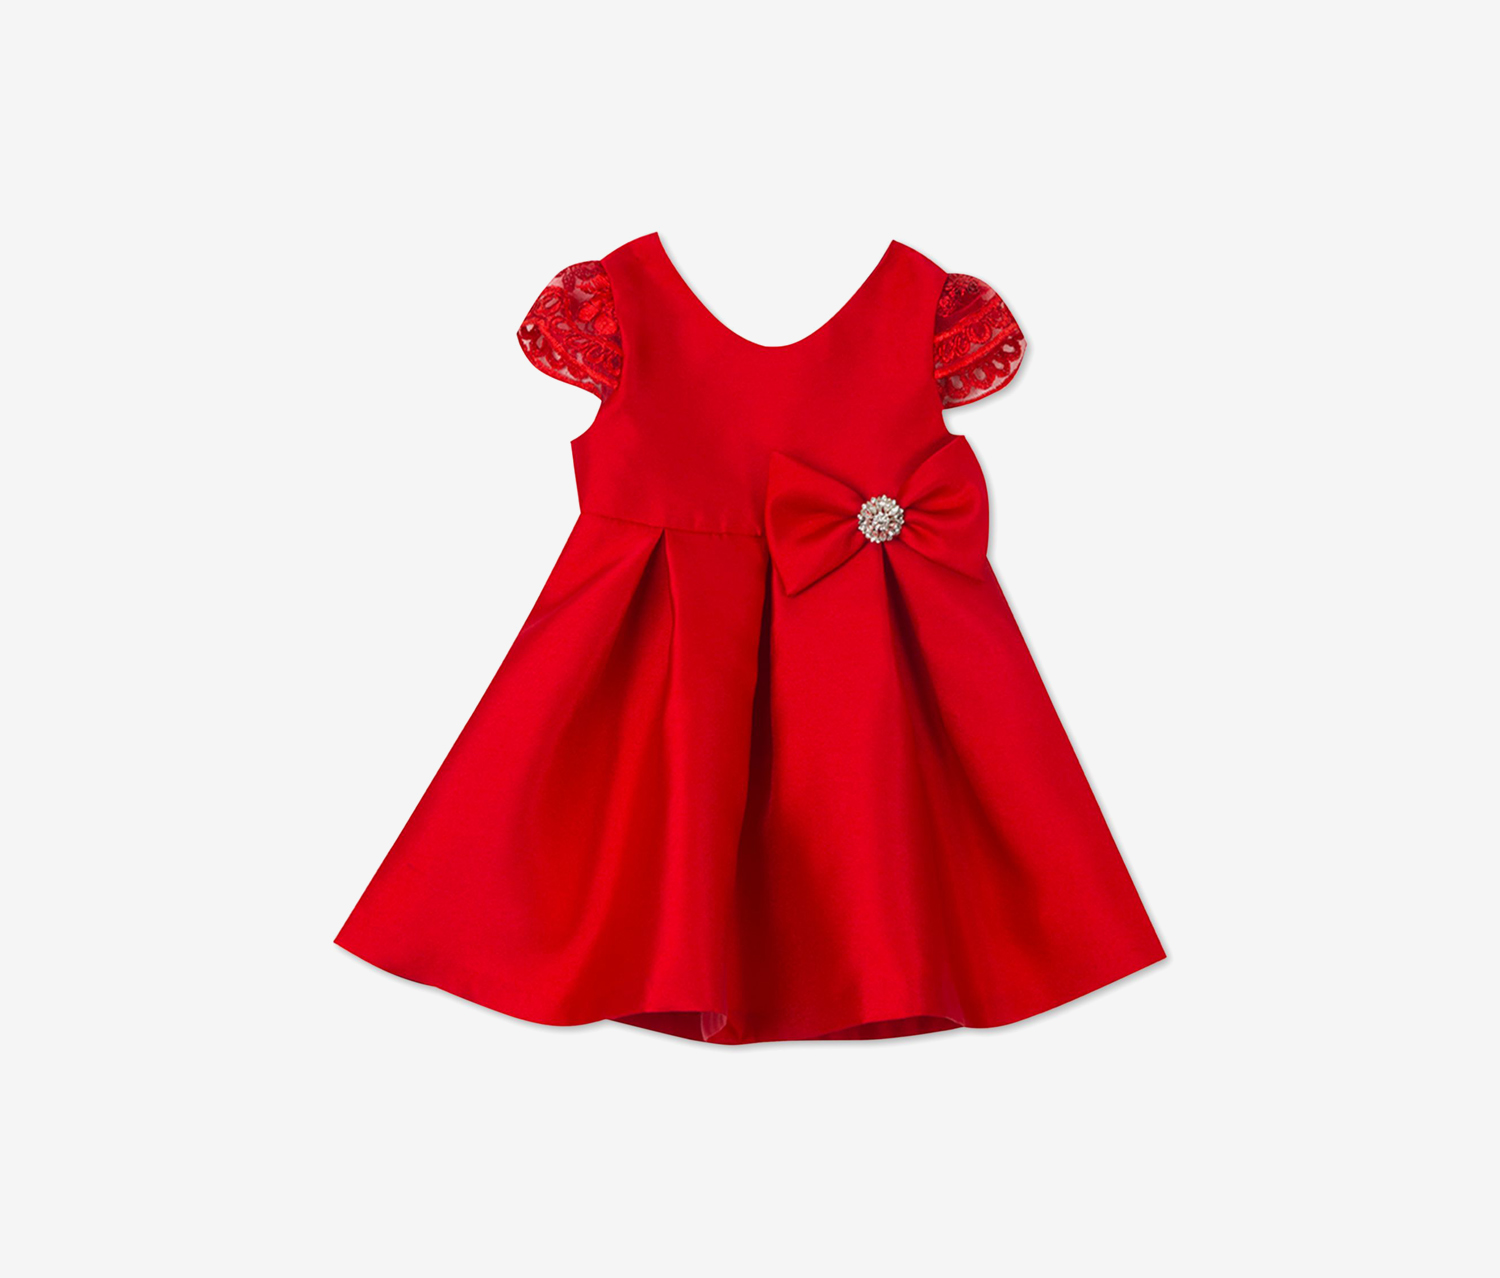 Toddler Girls Satin Fit & Flare Party Dress, Red